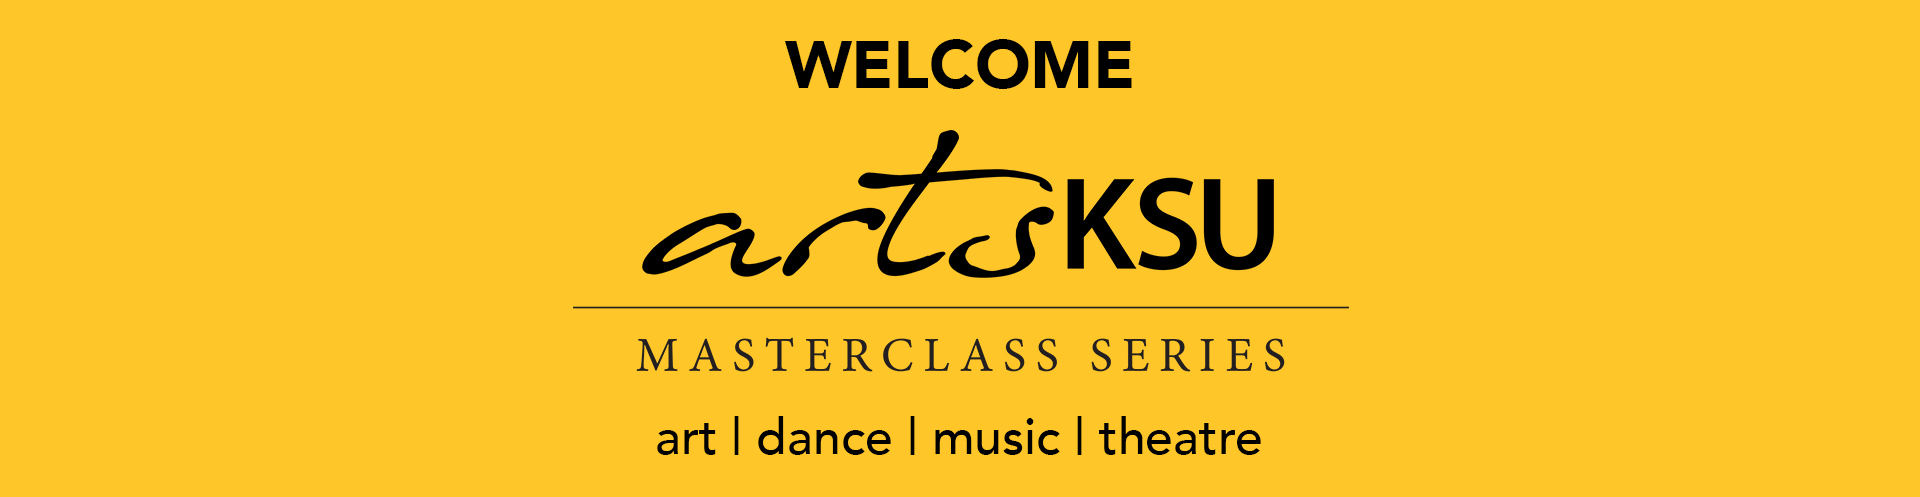 banner for masterclass series